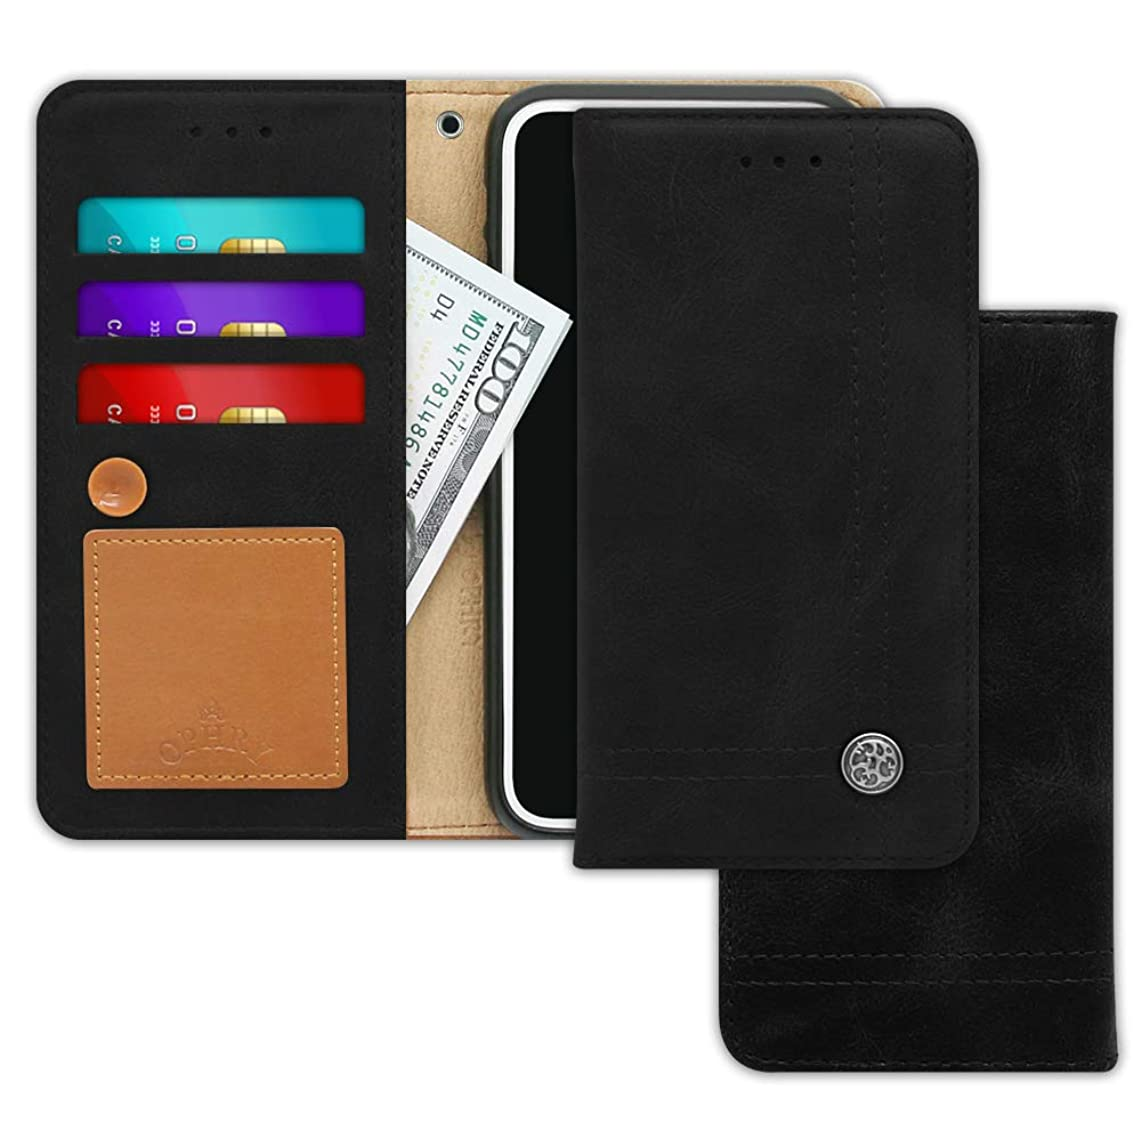 LG Q6, Q6 Alpha, Q6 Plus, G6 Mini Case [Free 9 Gifts] Trim LINE Flip Diary Cover with Slim Wallet Design [Octopus Ver.]– Card Holder, Cash Slots, Kickstand, Hand Strap & Message Pad - Aniline Black